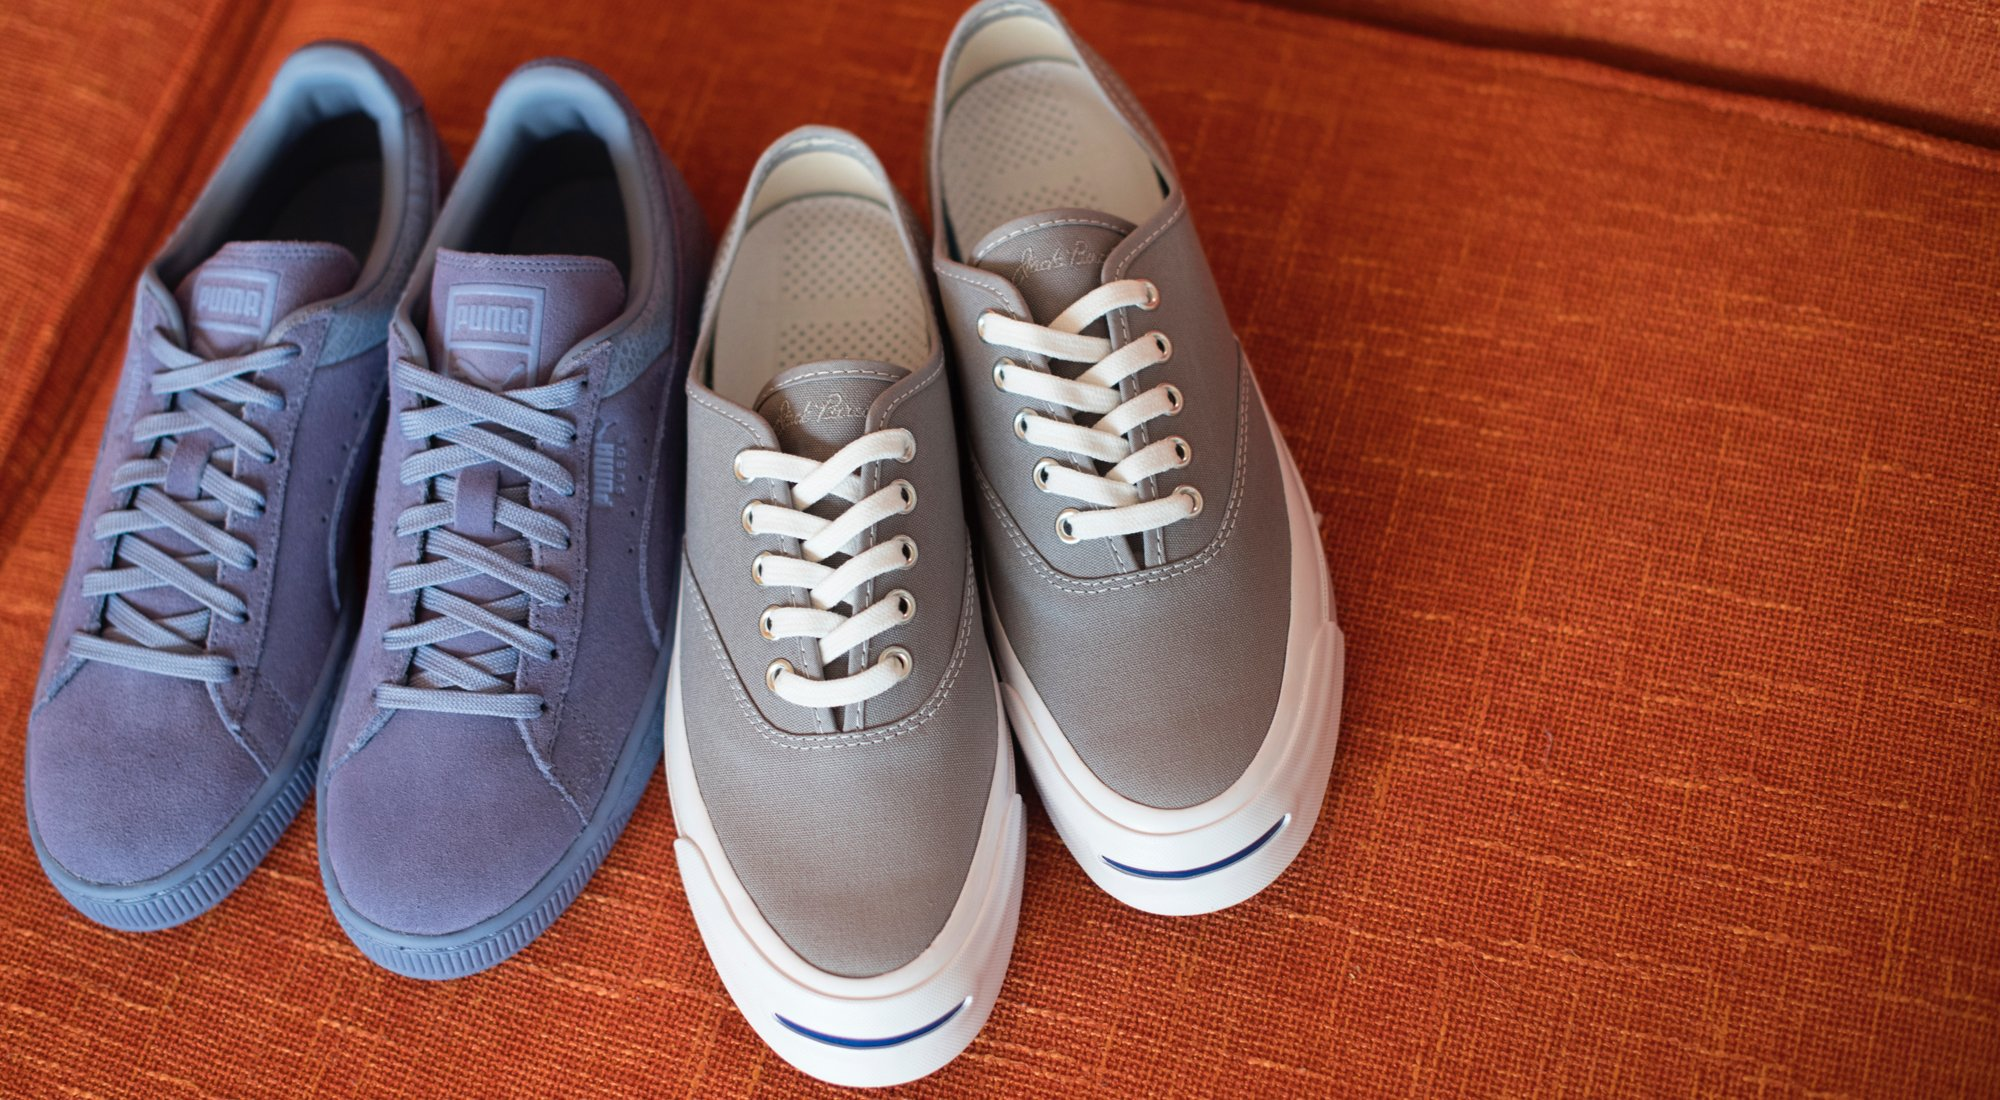 A 3/27 - PUMA Blue Suede Street Sneaks And Grey Sneakers